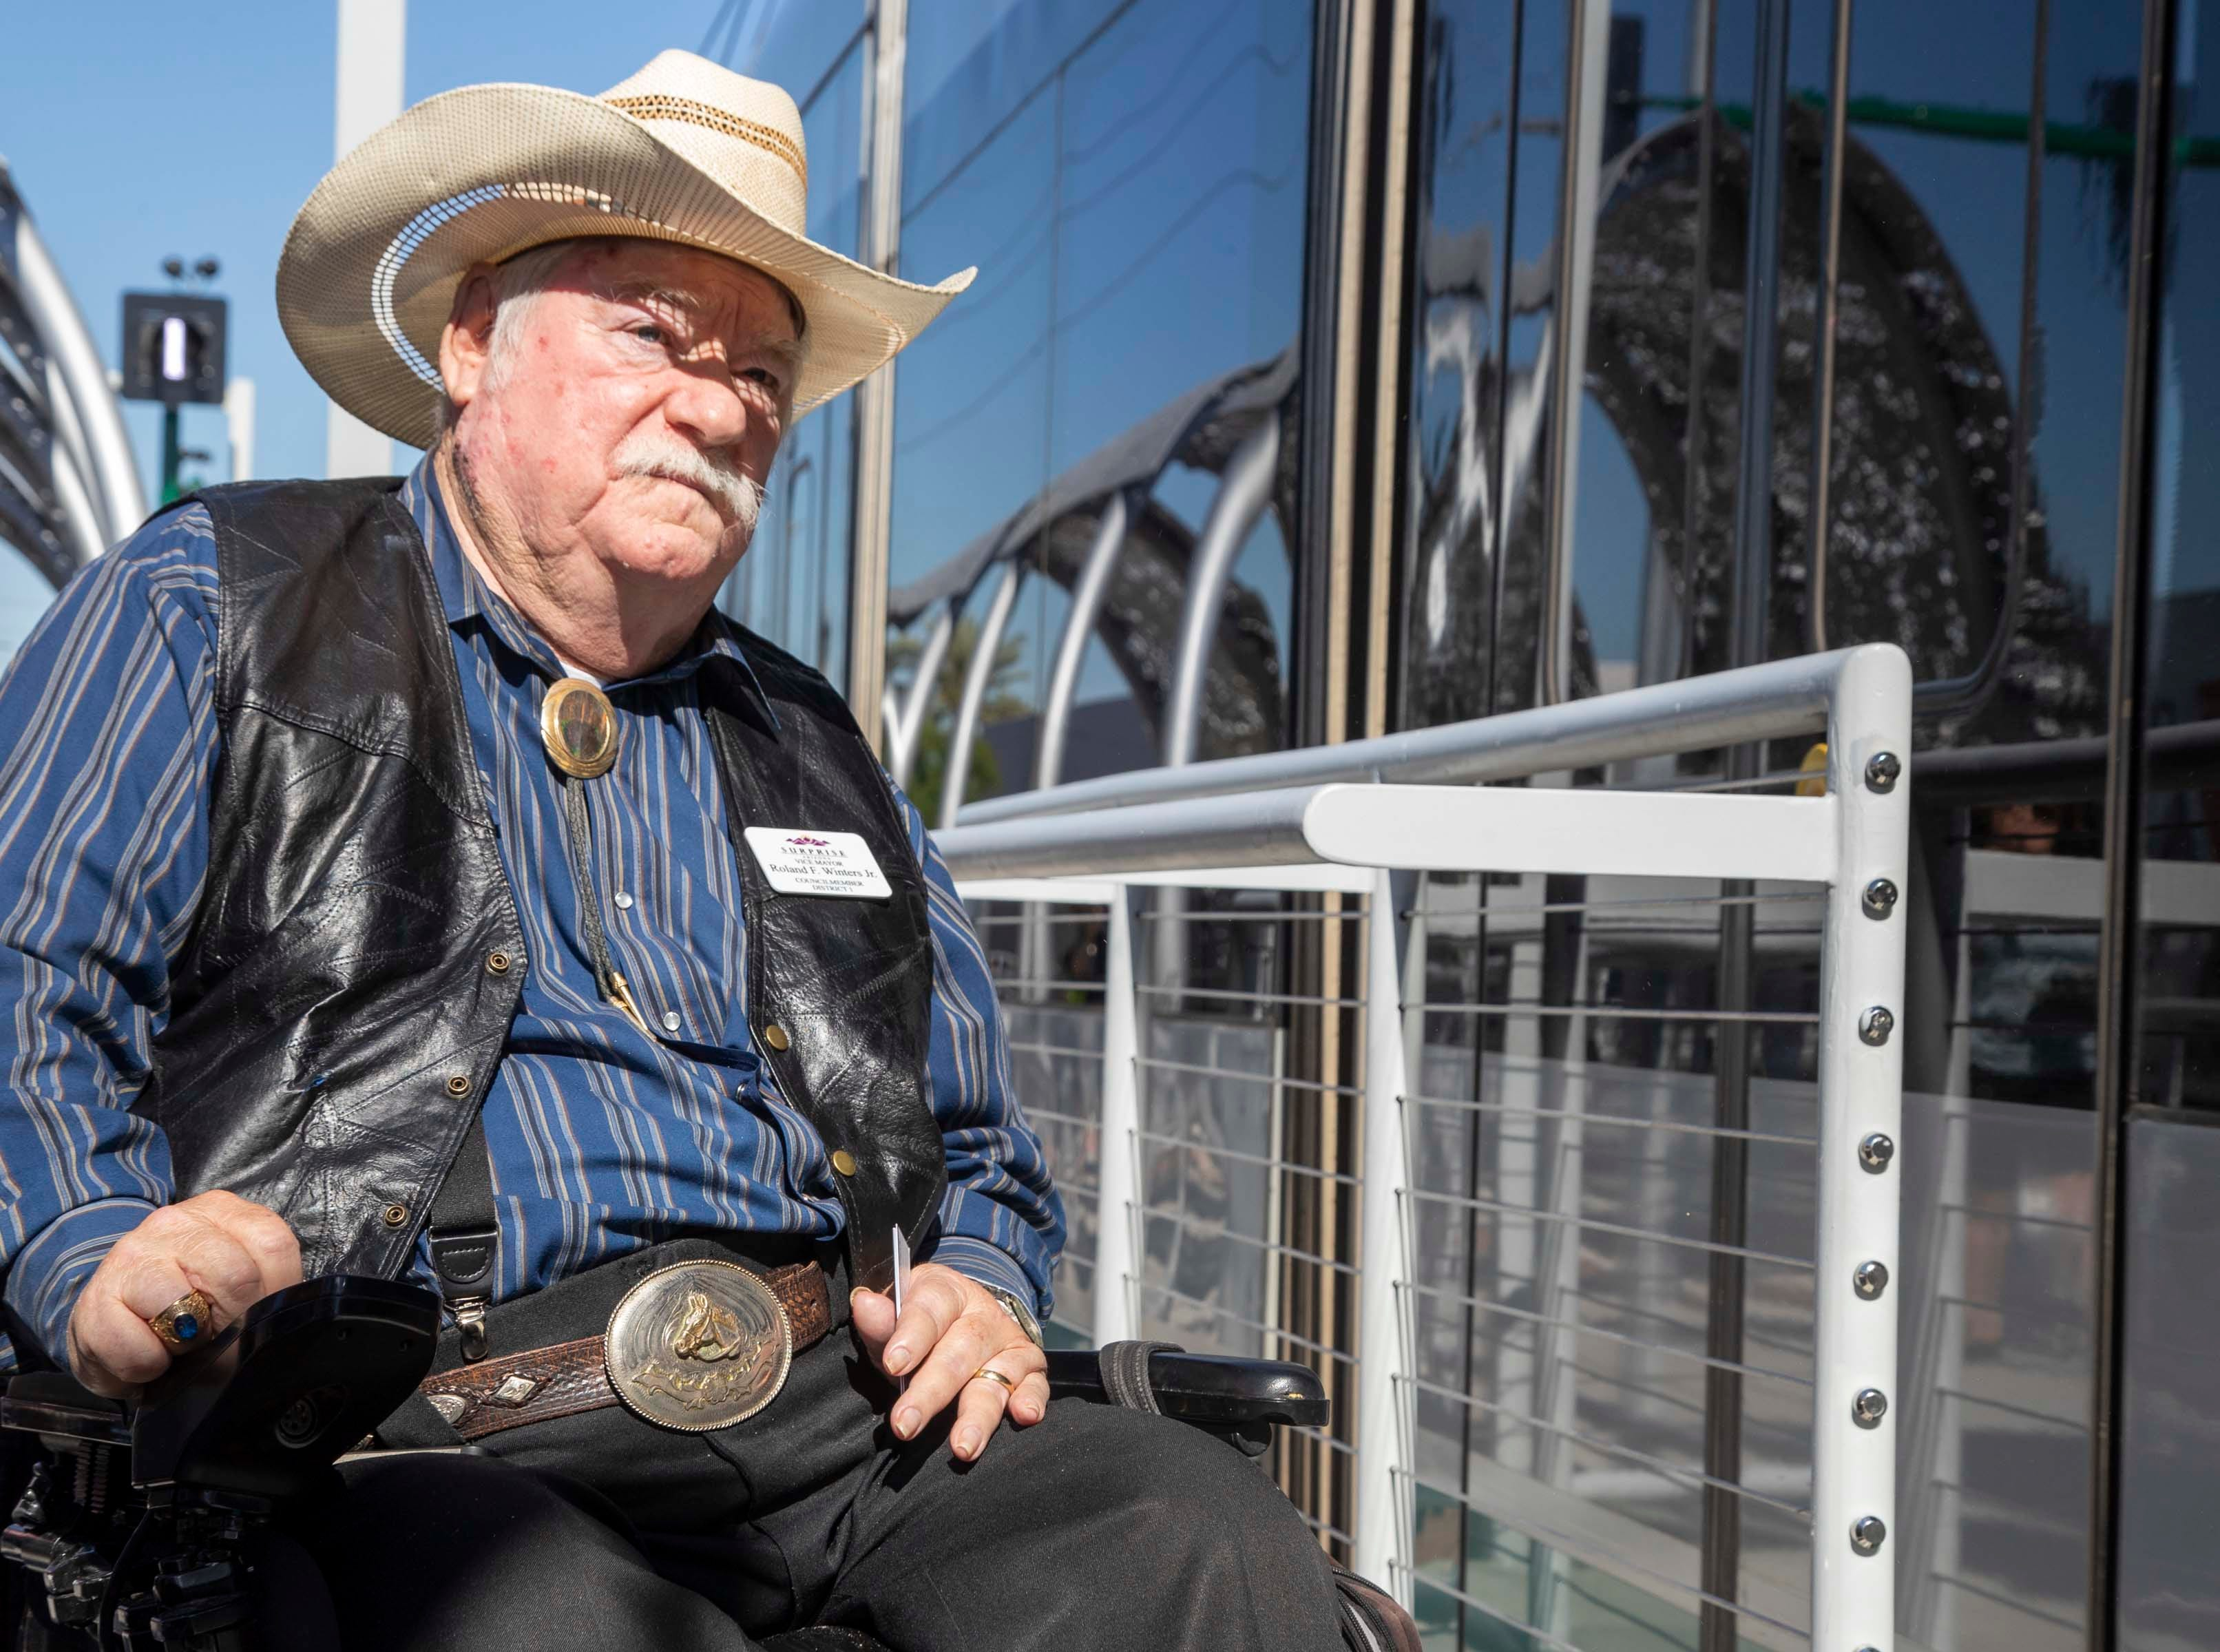 Surprise Vice Mayor & Council member District 1, Ronald F. Winters Jr. attends the unveiling of the new 50th Street and Washington light rail station, which will provide additional access to Ability 360, one of Arizona's largest disability resource centers.